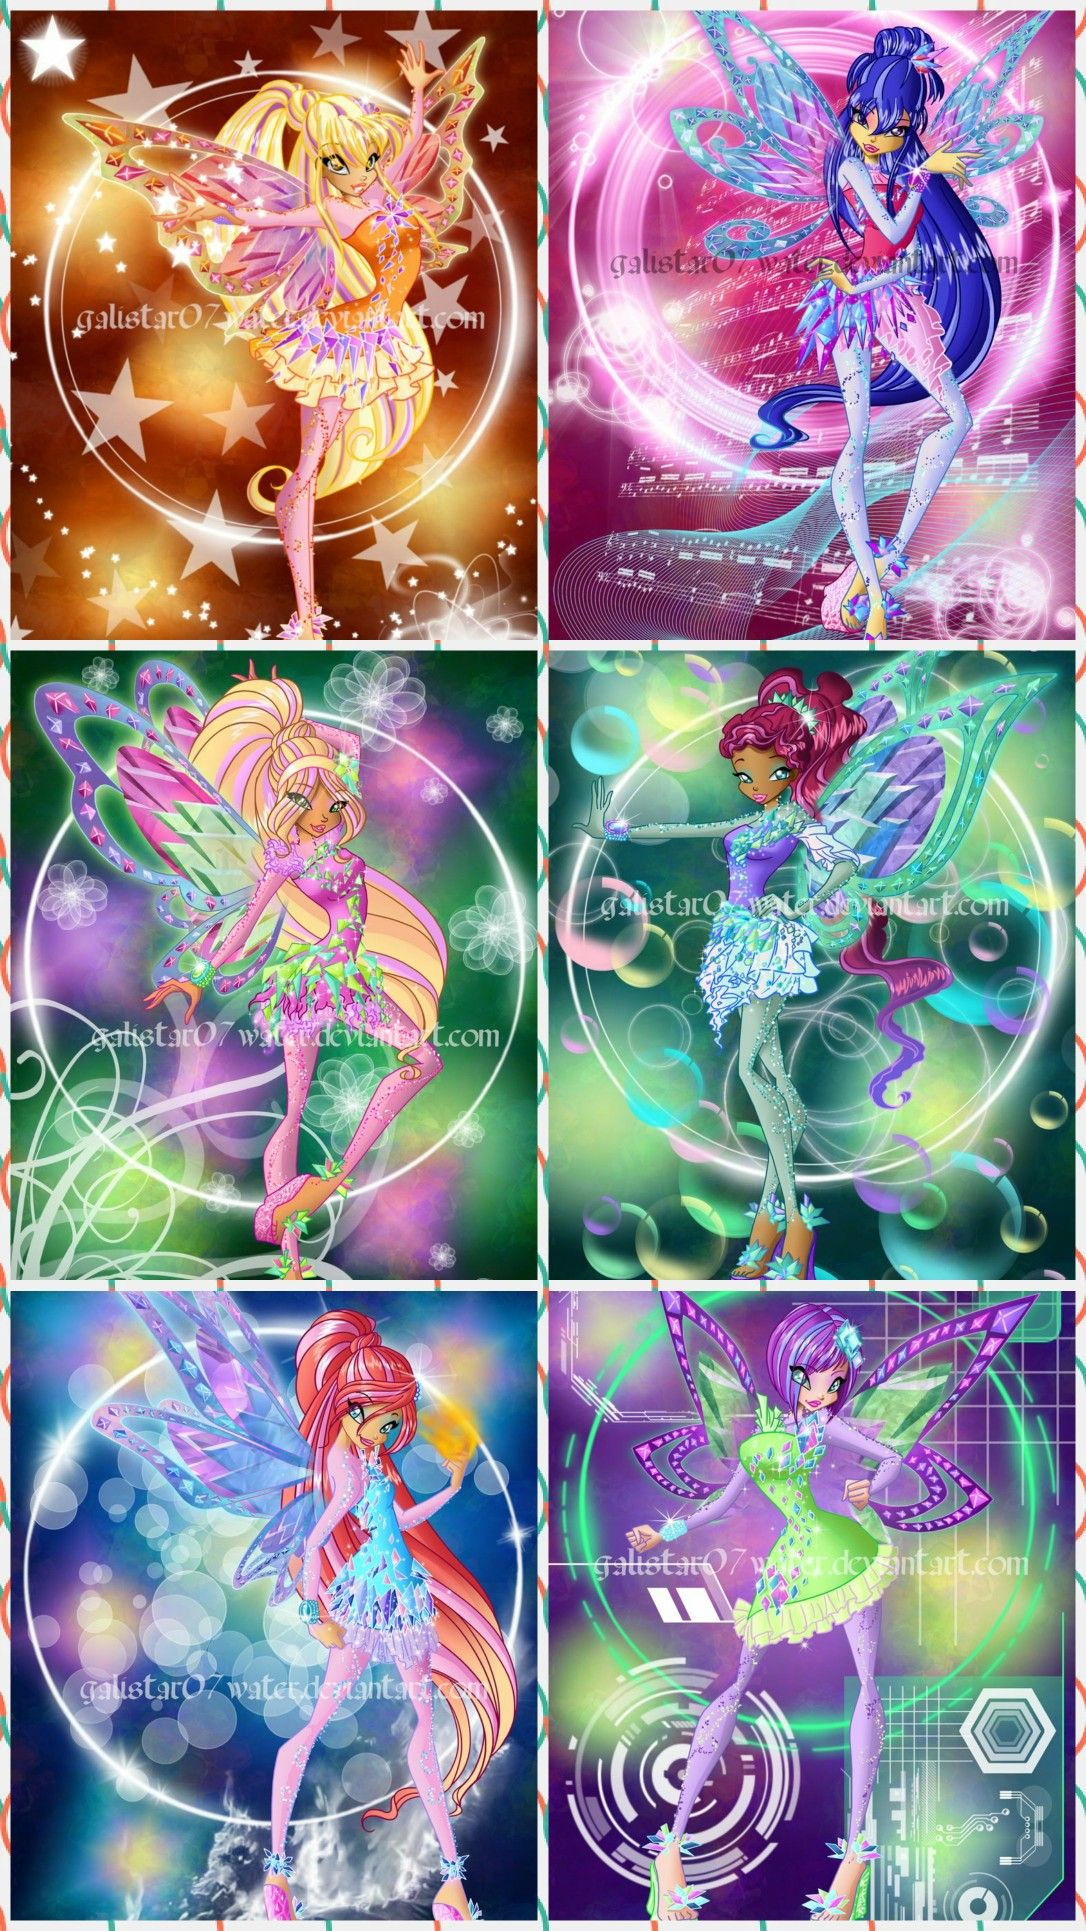 Tynix powers | winx club in 2019 | Bloom winx club, Club style, Winx